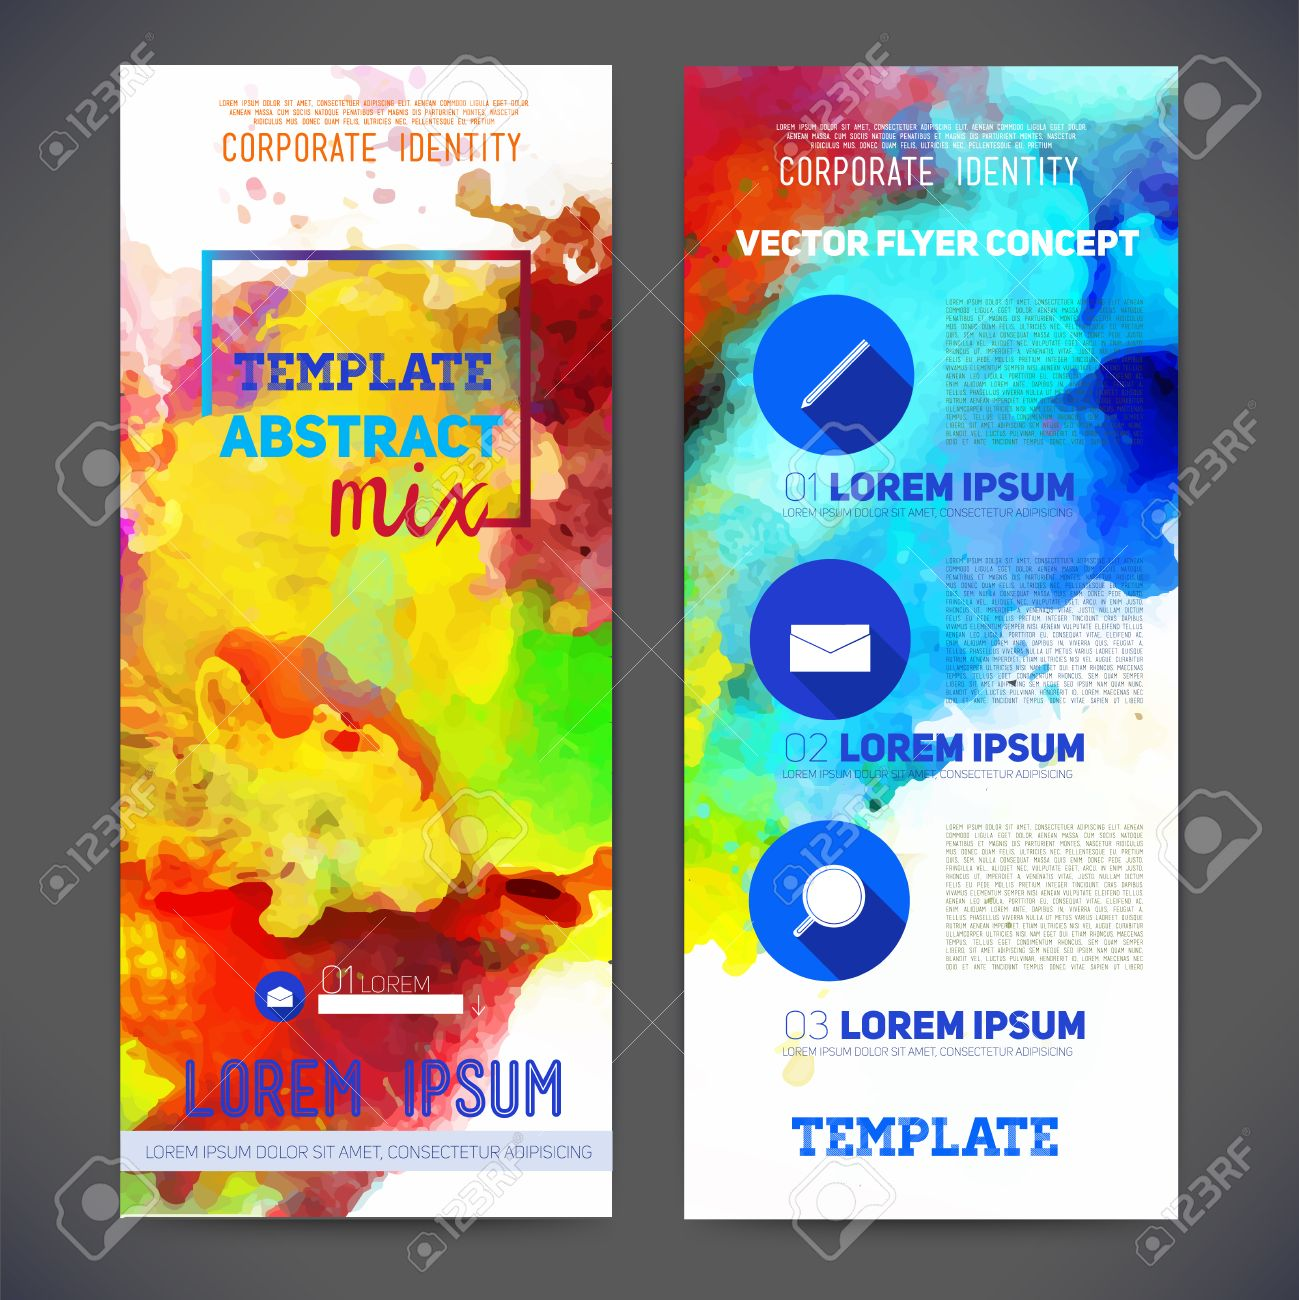 printing business stock illustrations cliparts and royalty printing business abstract vector template design brochure web sites page leaflet